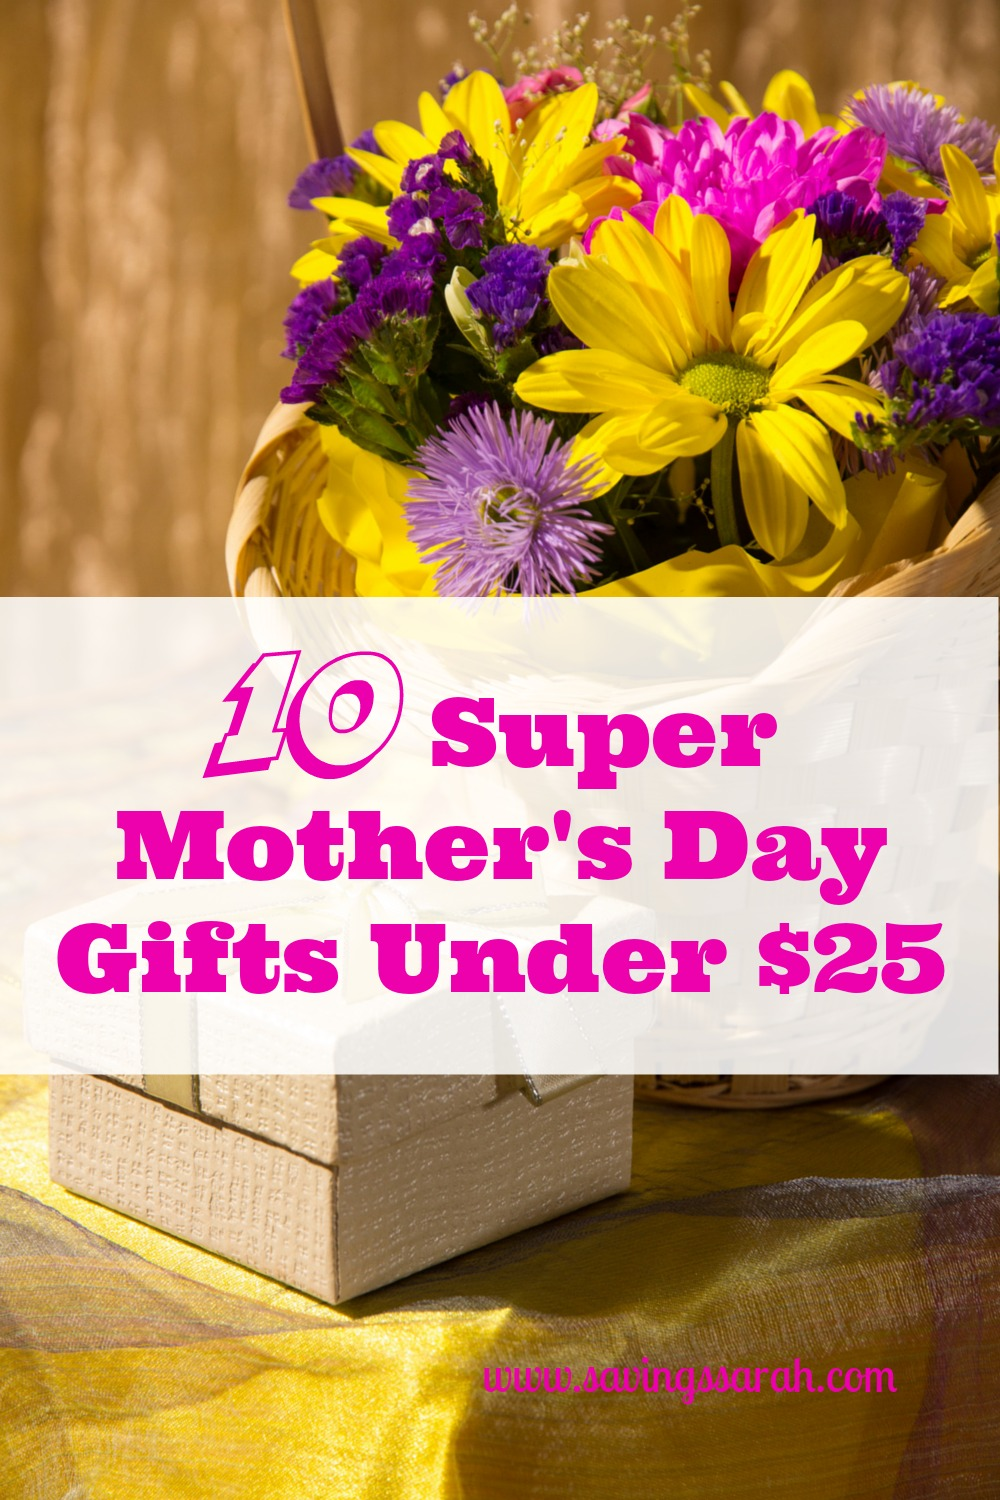 & 10 Motheru0027s Day Gifts Under $25 - Earning and Saving with Sarah